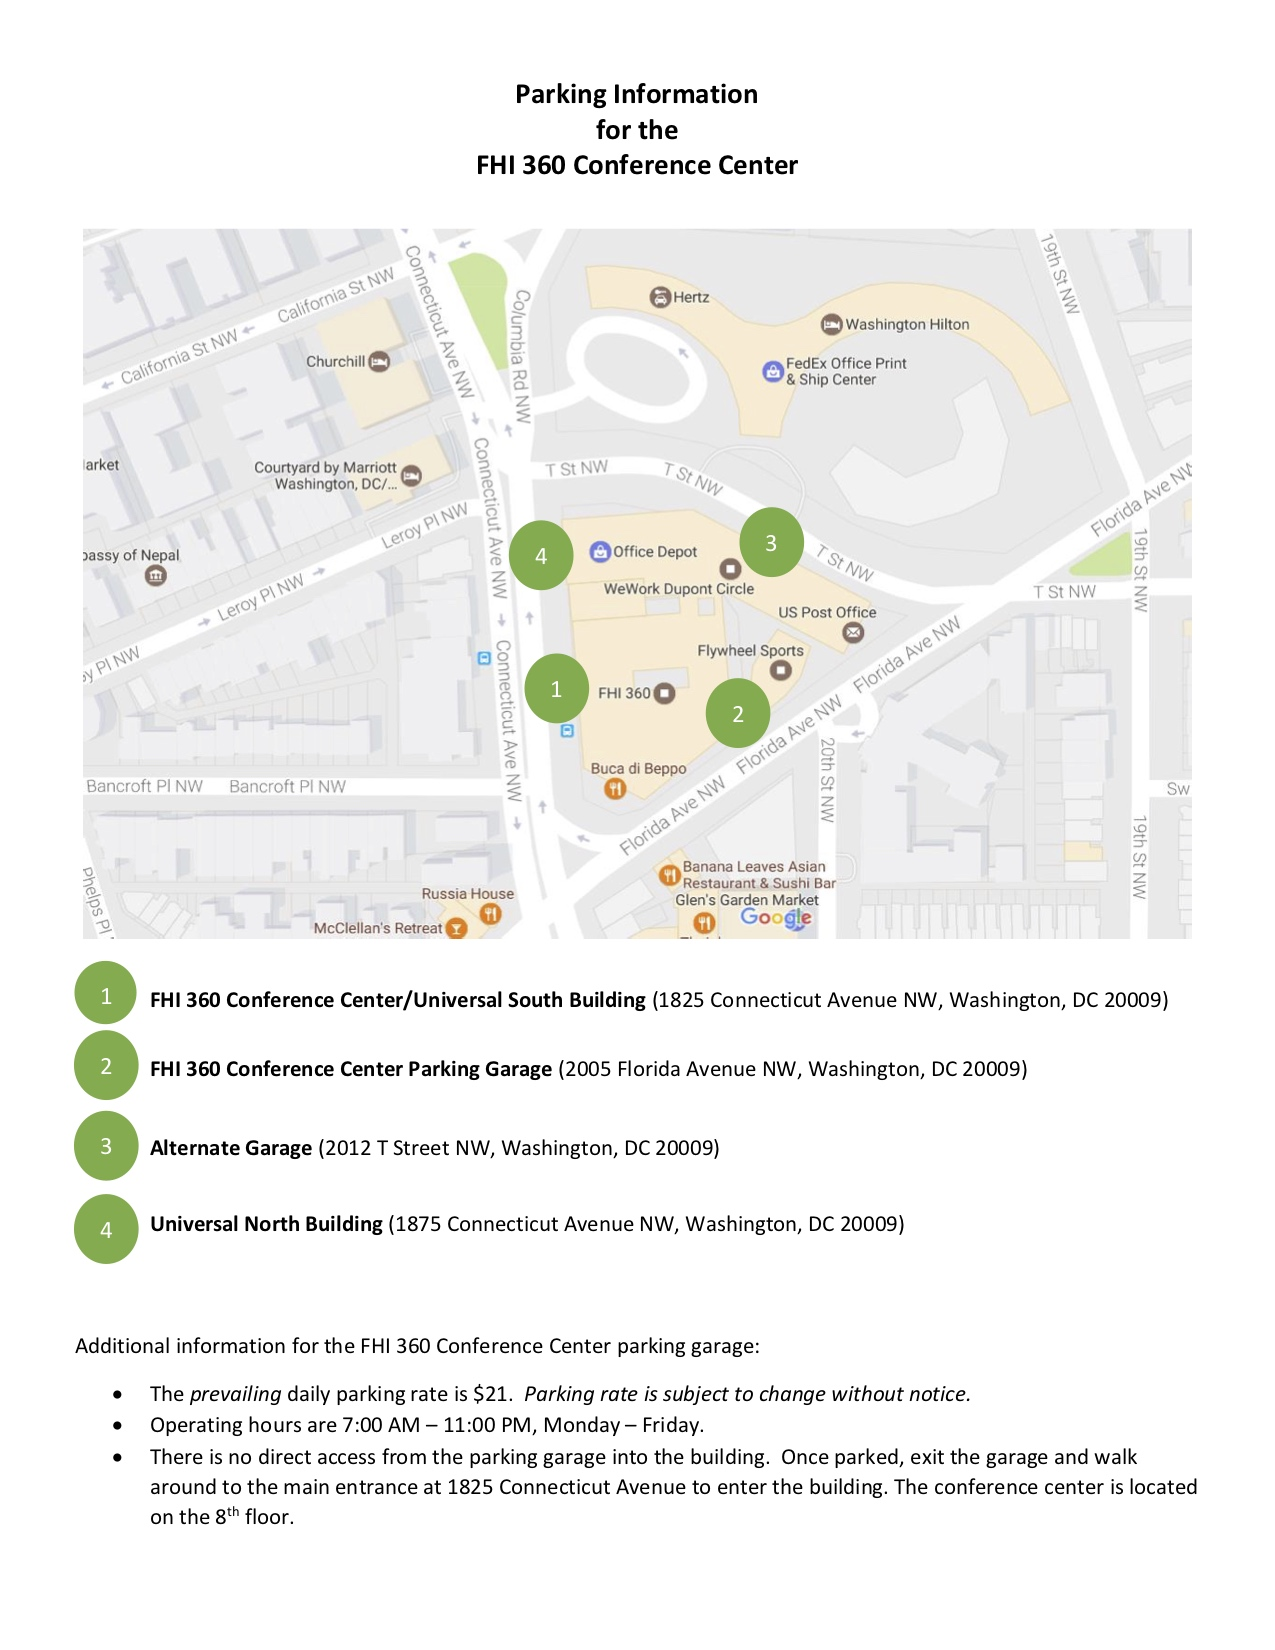 FHI 360 Conference Center Parking Information[3].jpg